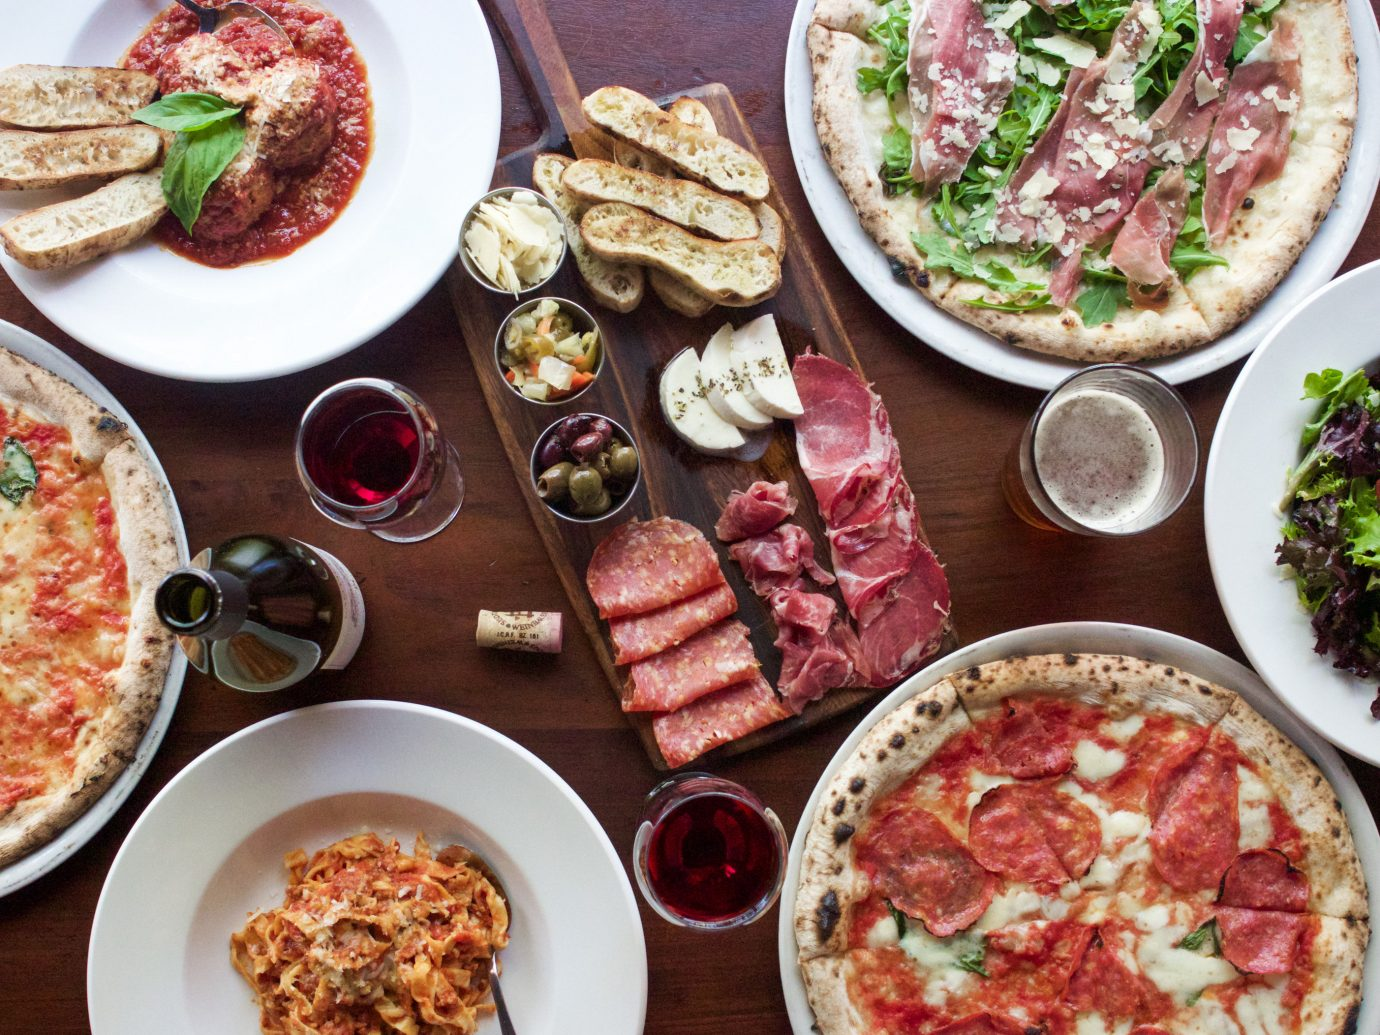 Trip Ideas food plate table dish different meal cuisine hors d oeuvre supper meat breakfast meze lunch items brunch pizza several various sliced containing toppings